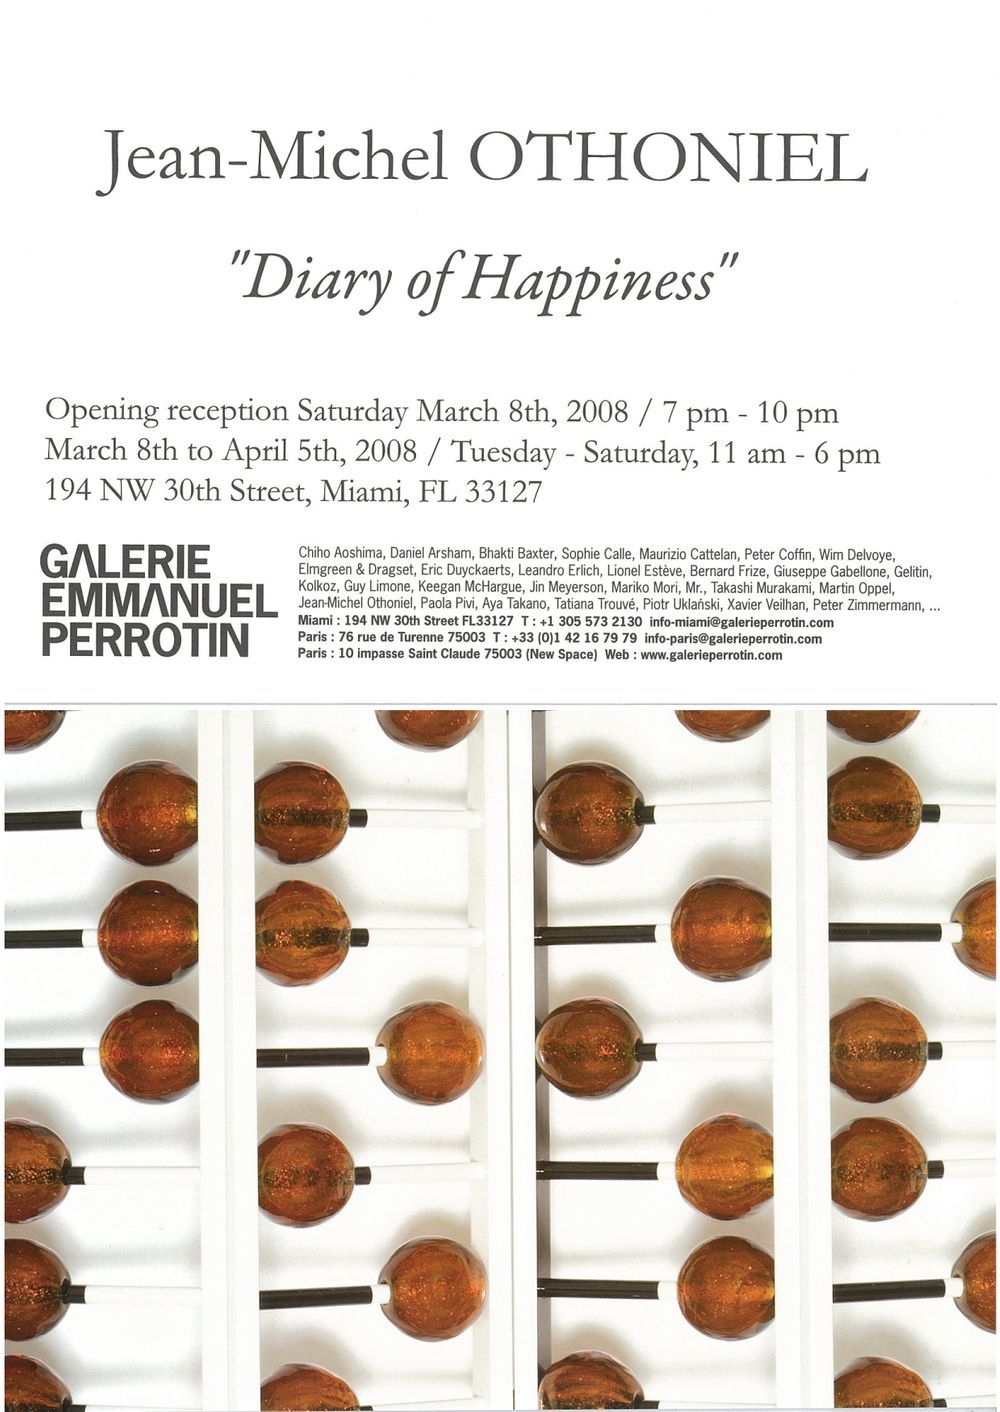 Artist:Jean-Michel OTHONIEL, Exhibition:Diary of Happiness